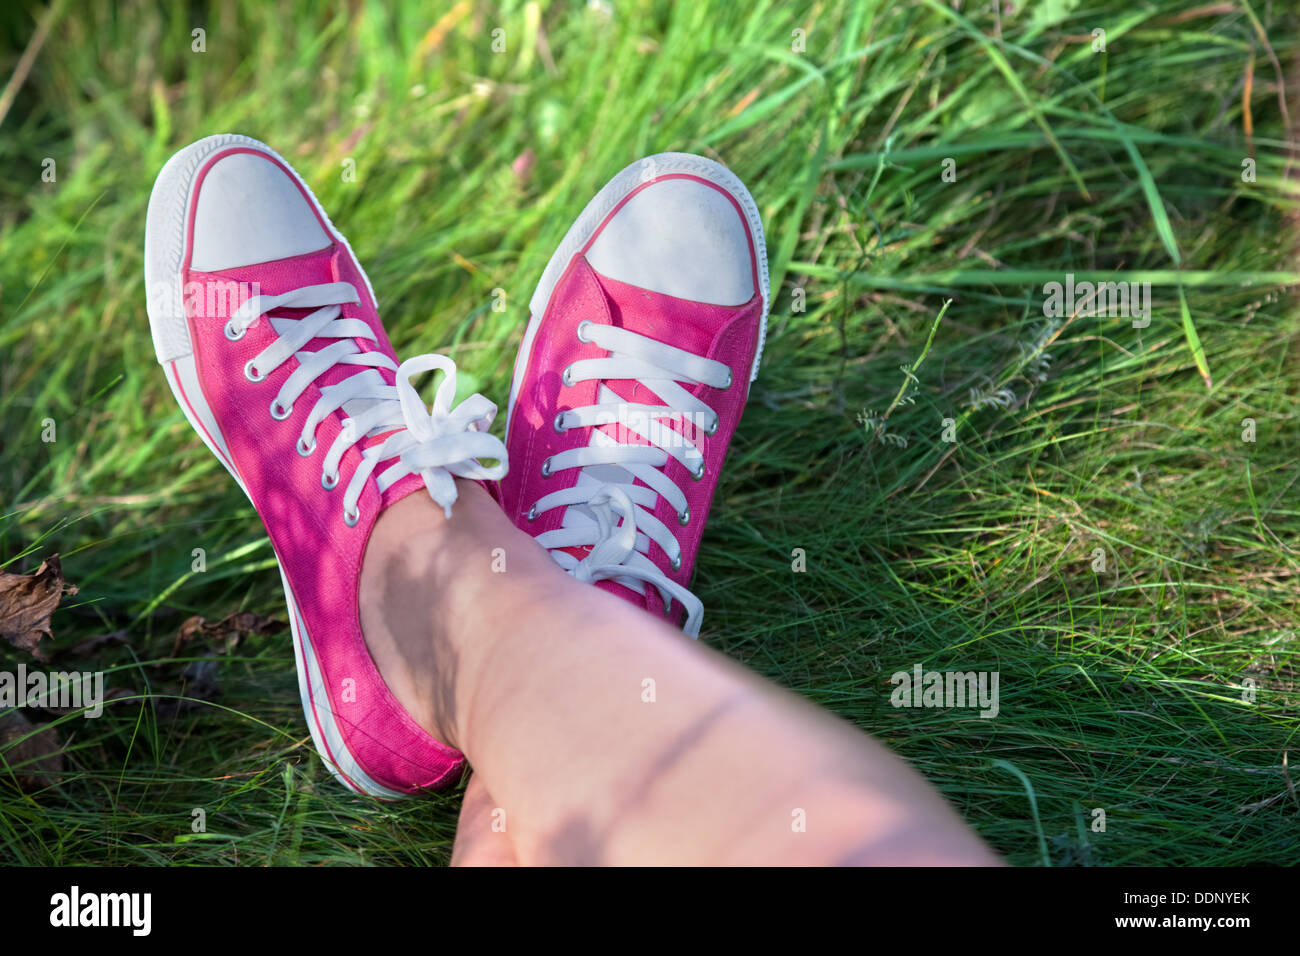 Woman wearing pink trainers with legs crossed outside - point of view - Stock Image